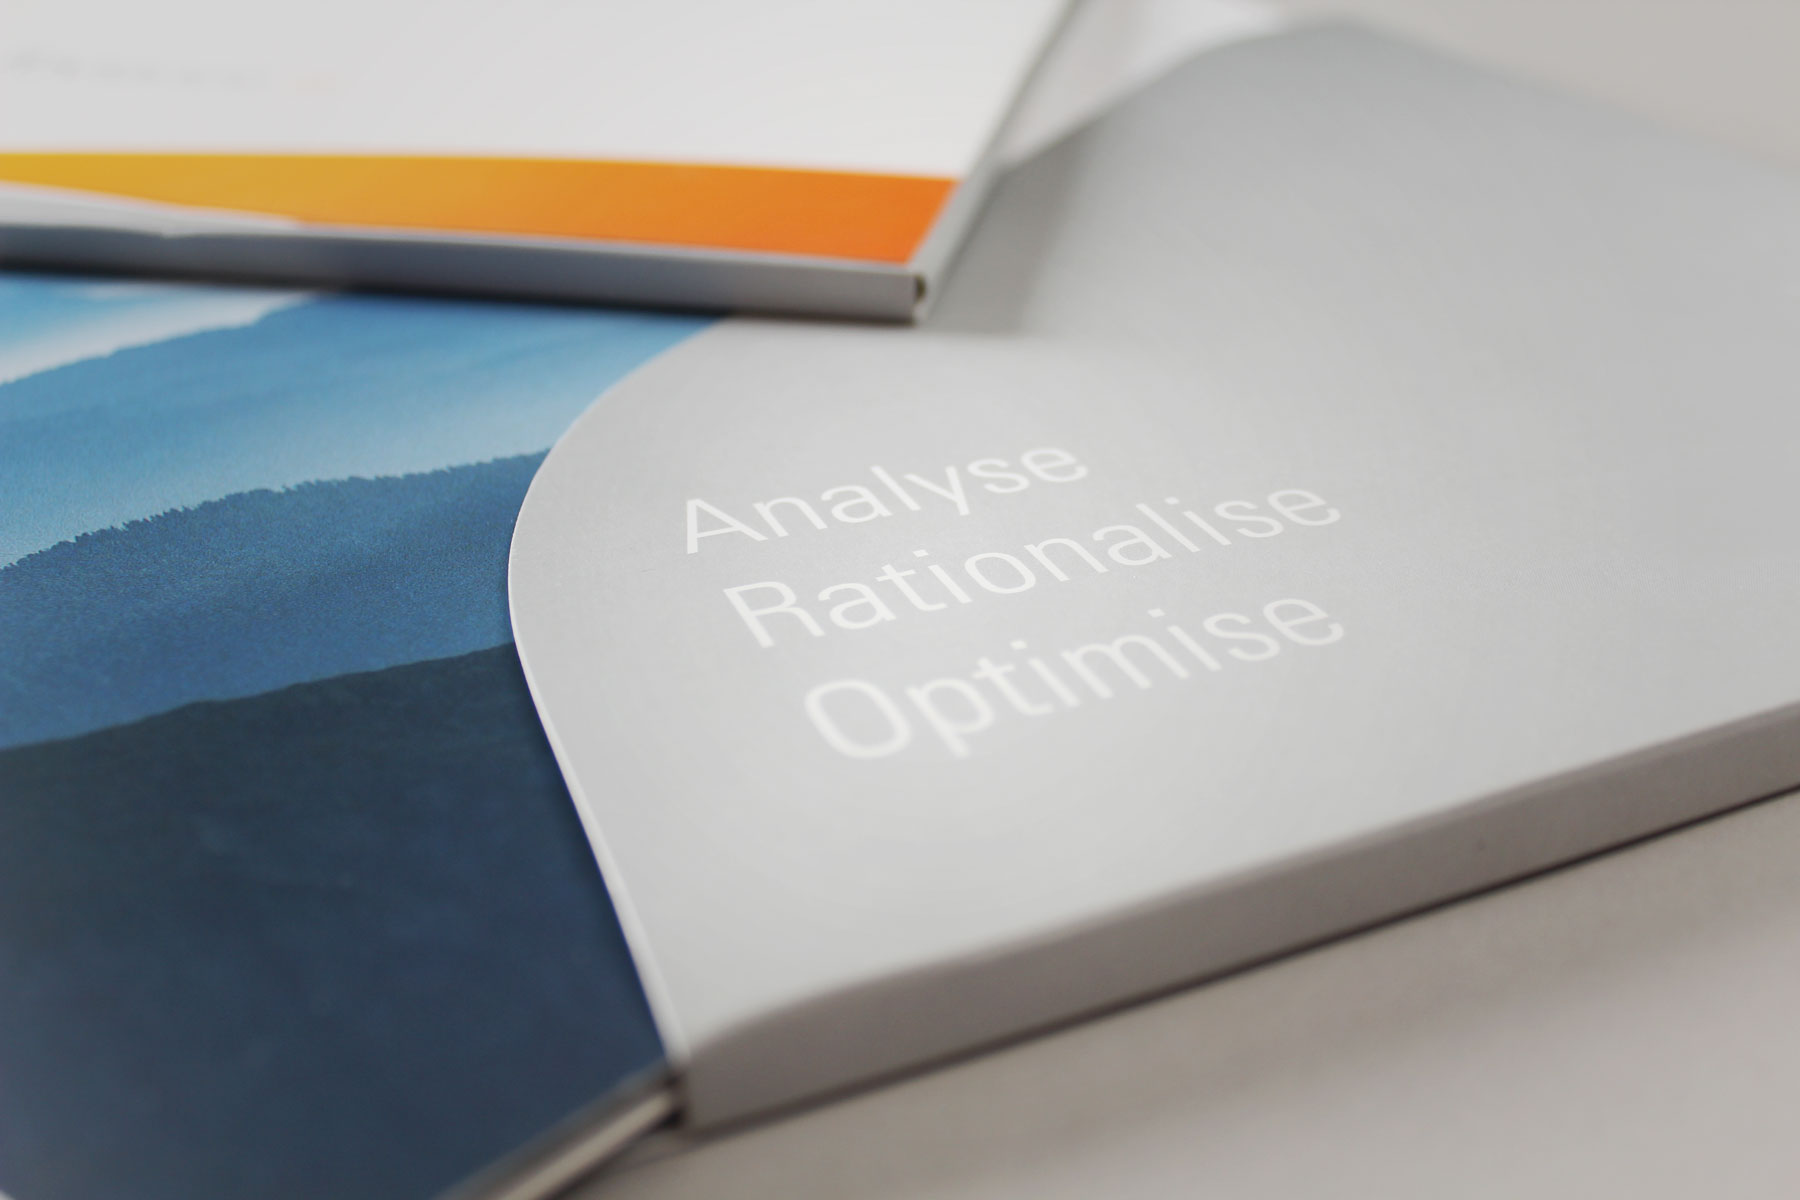 We helped develop the three part positioning statement. Analyse, Rationalise, Optimise - These indicate the three areas of business that make up the Foviance offer.